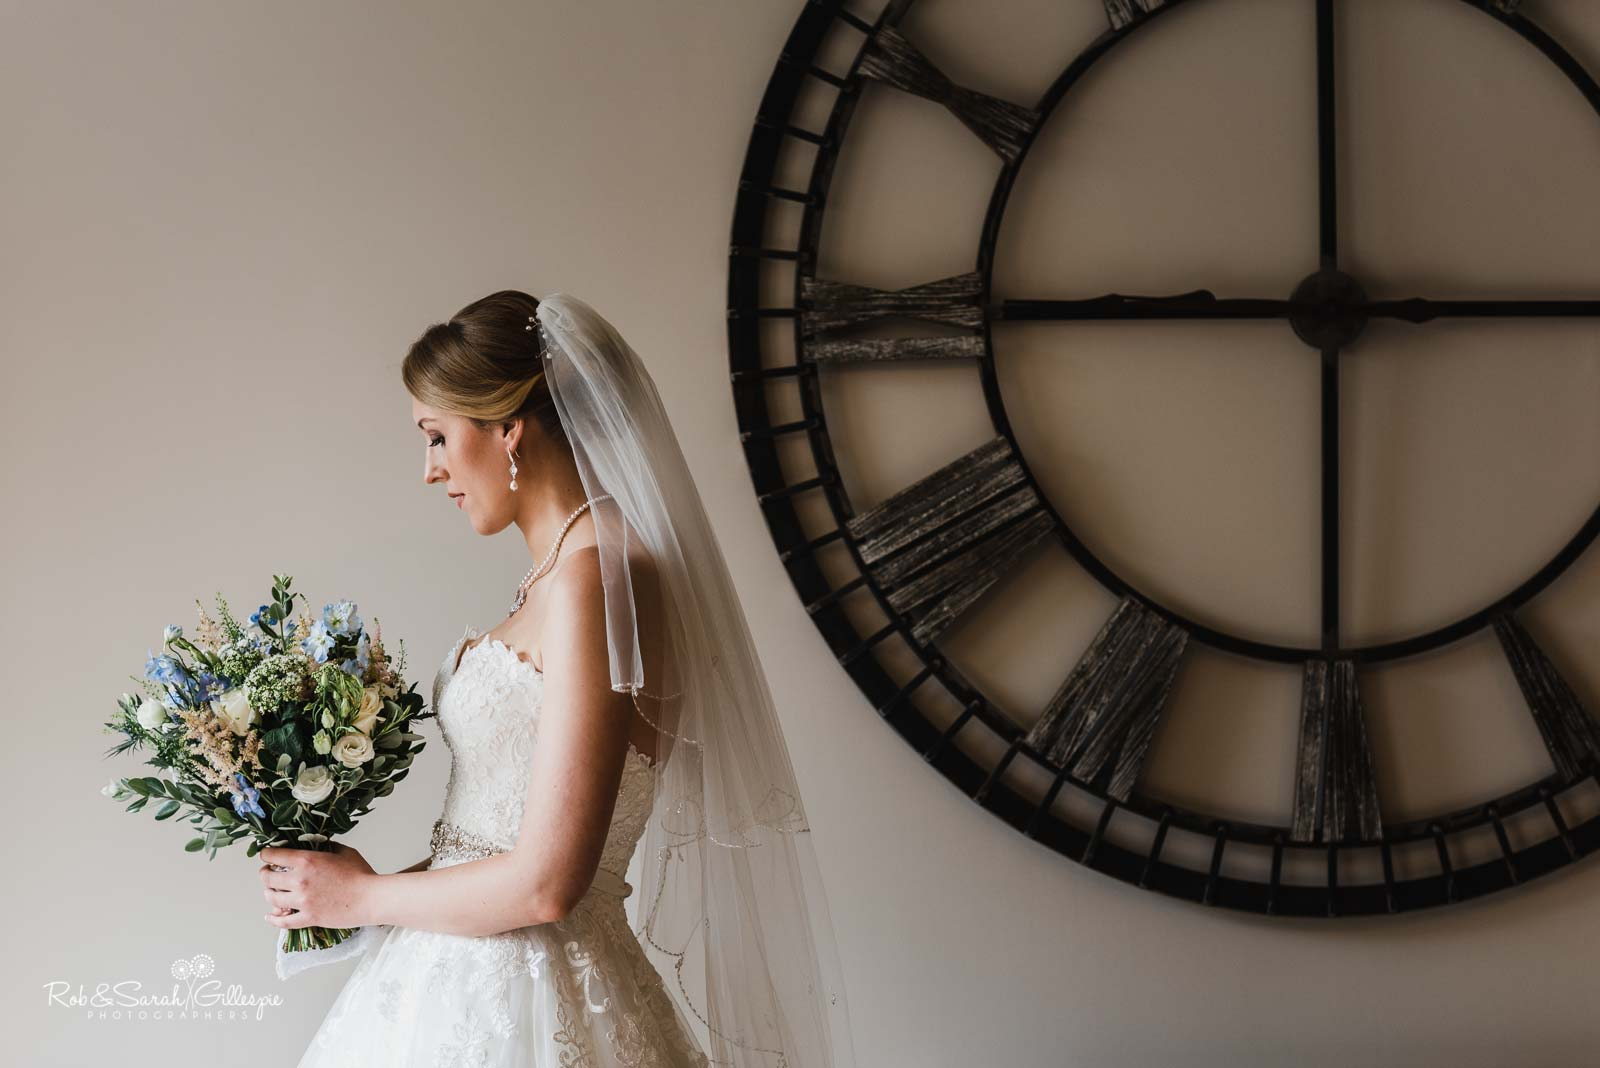 Beautiful portrait of bride at The Mill Barns with large clock on wall